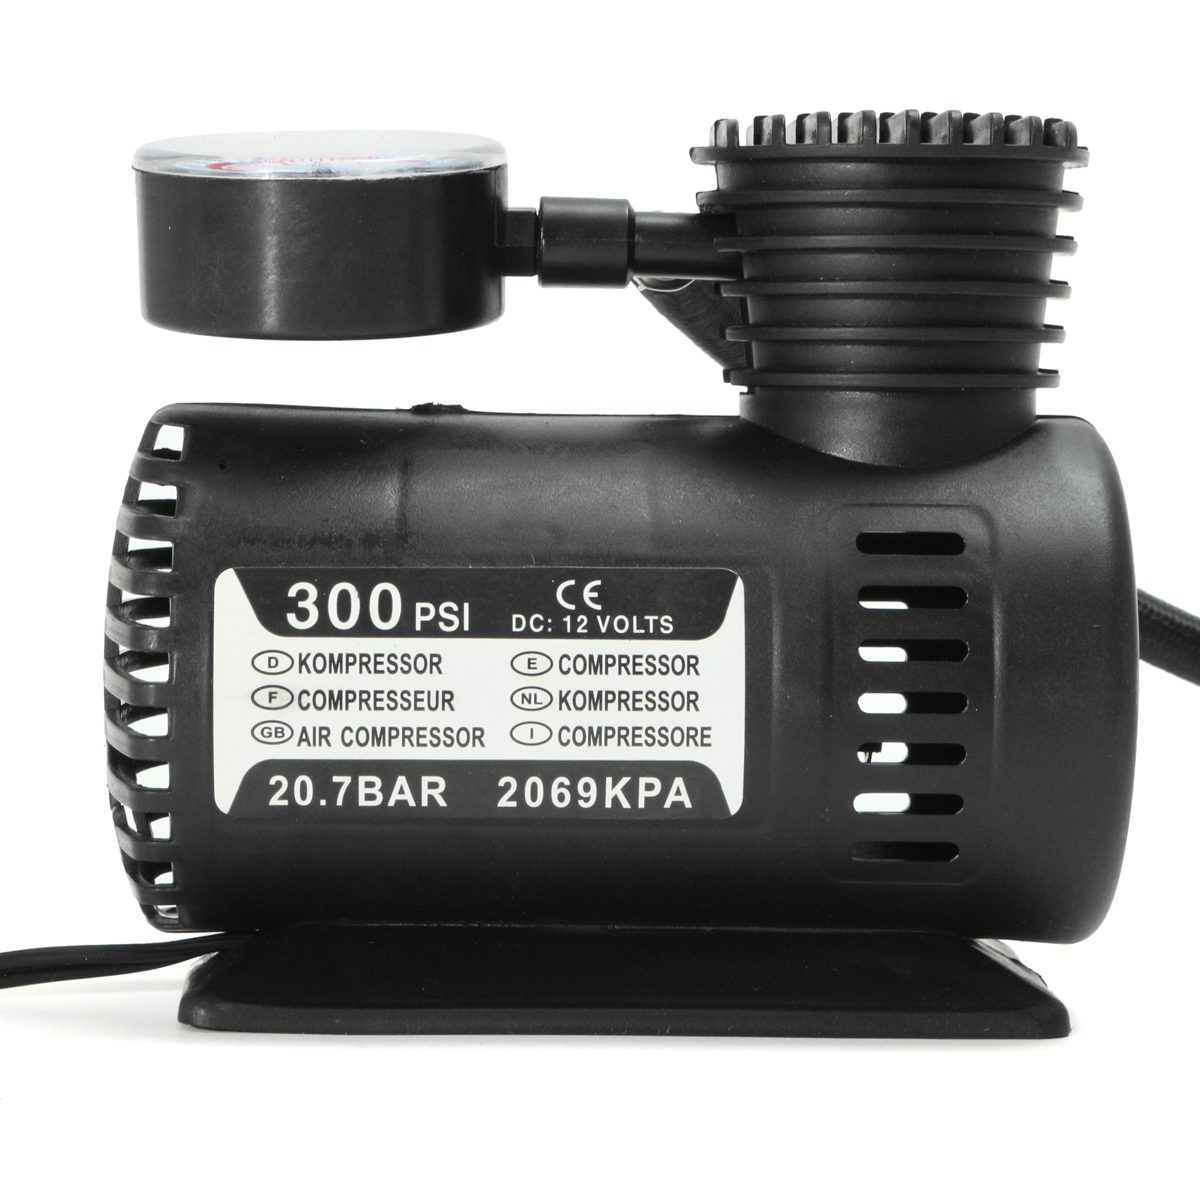 DC 12V 300Psi Portable Air Compressor Pump Tyre Inflator Electric Portable Pressure Pump